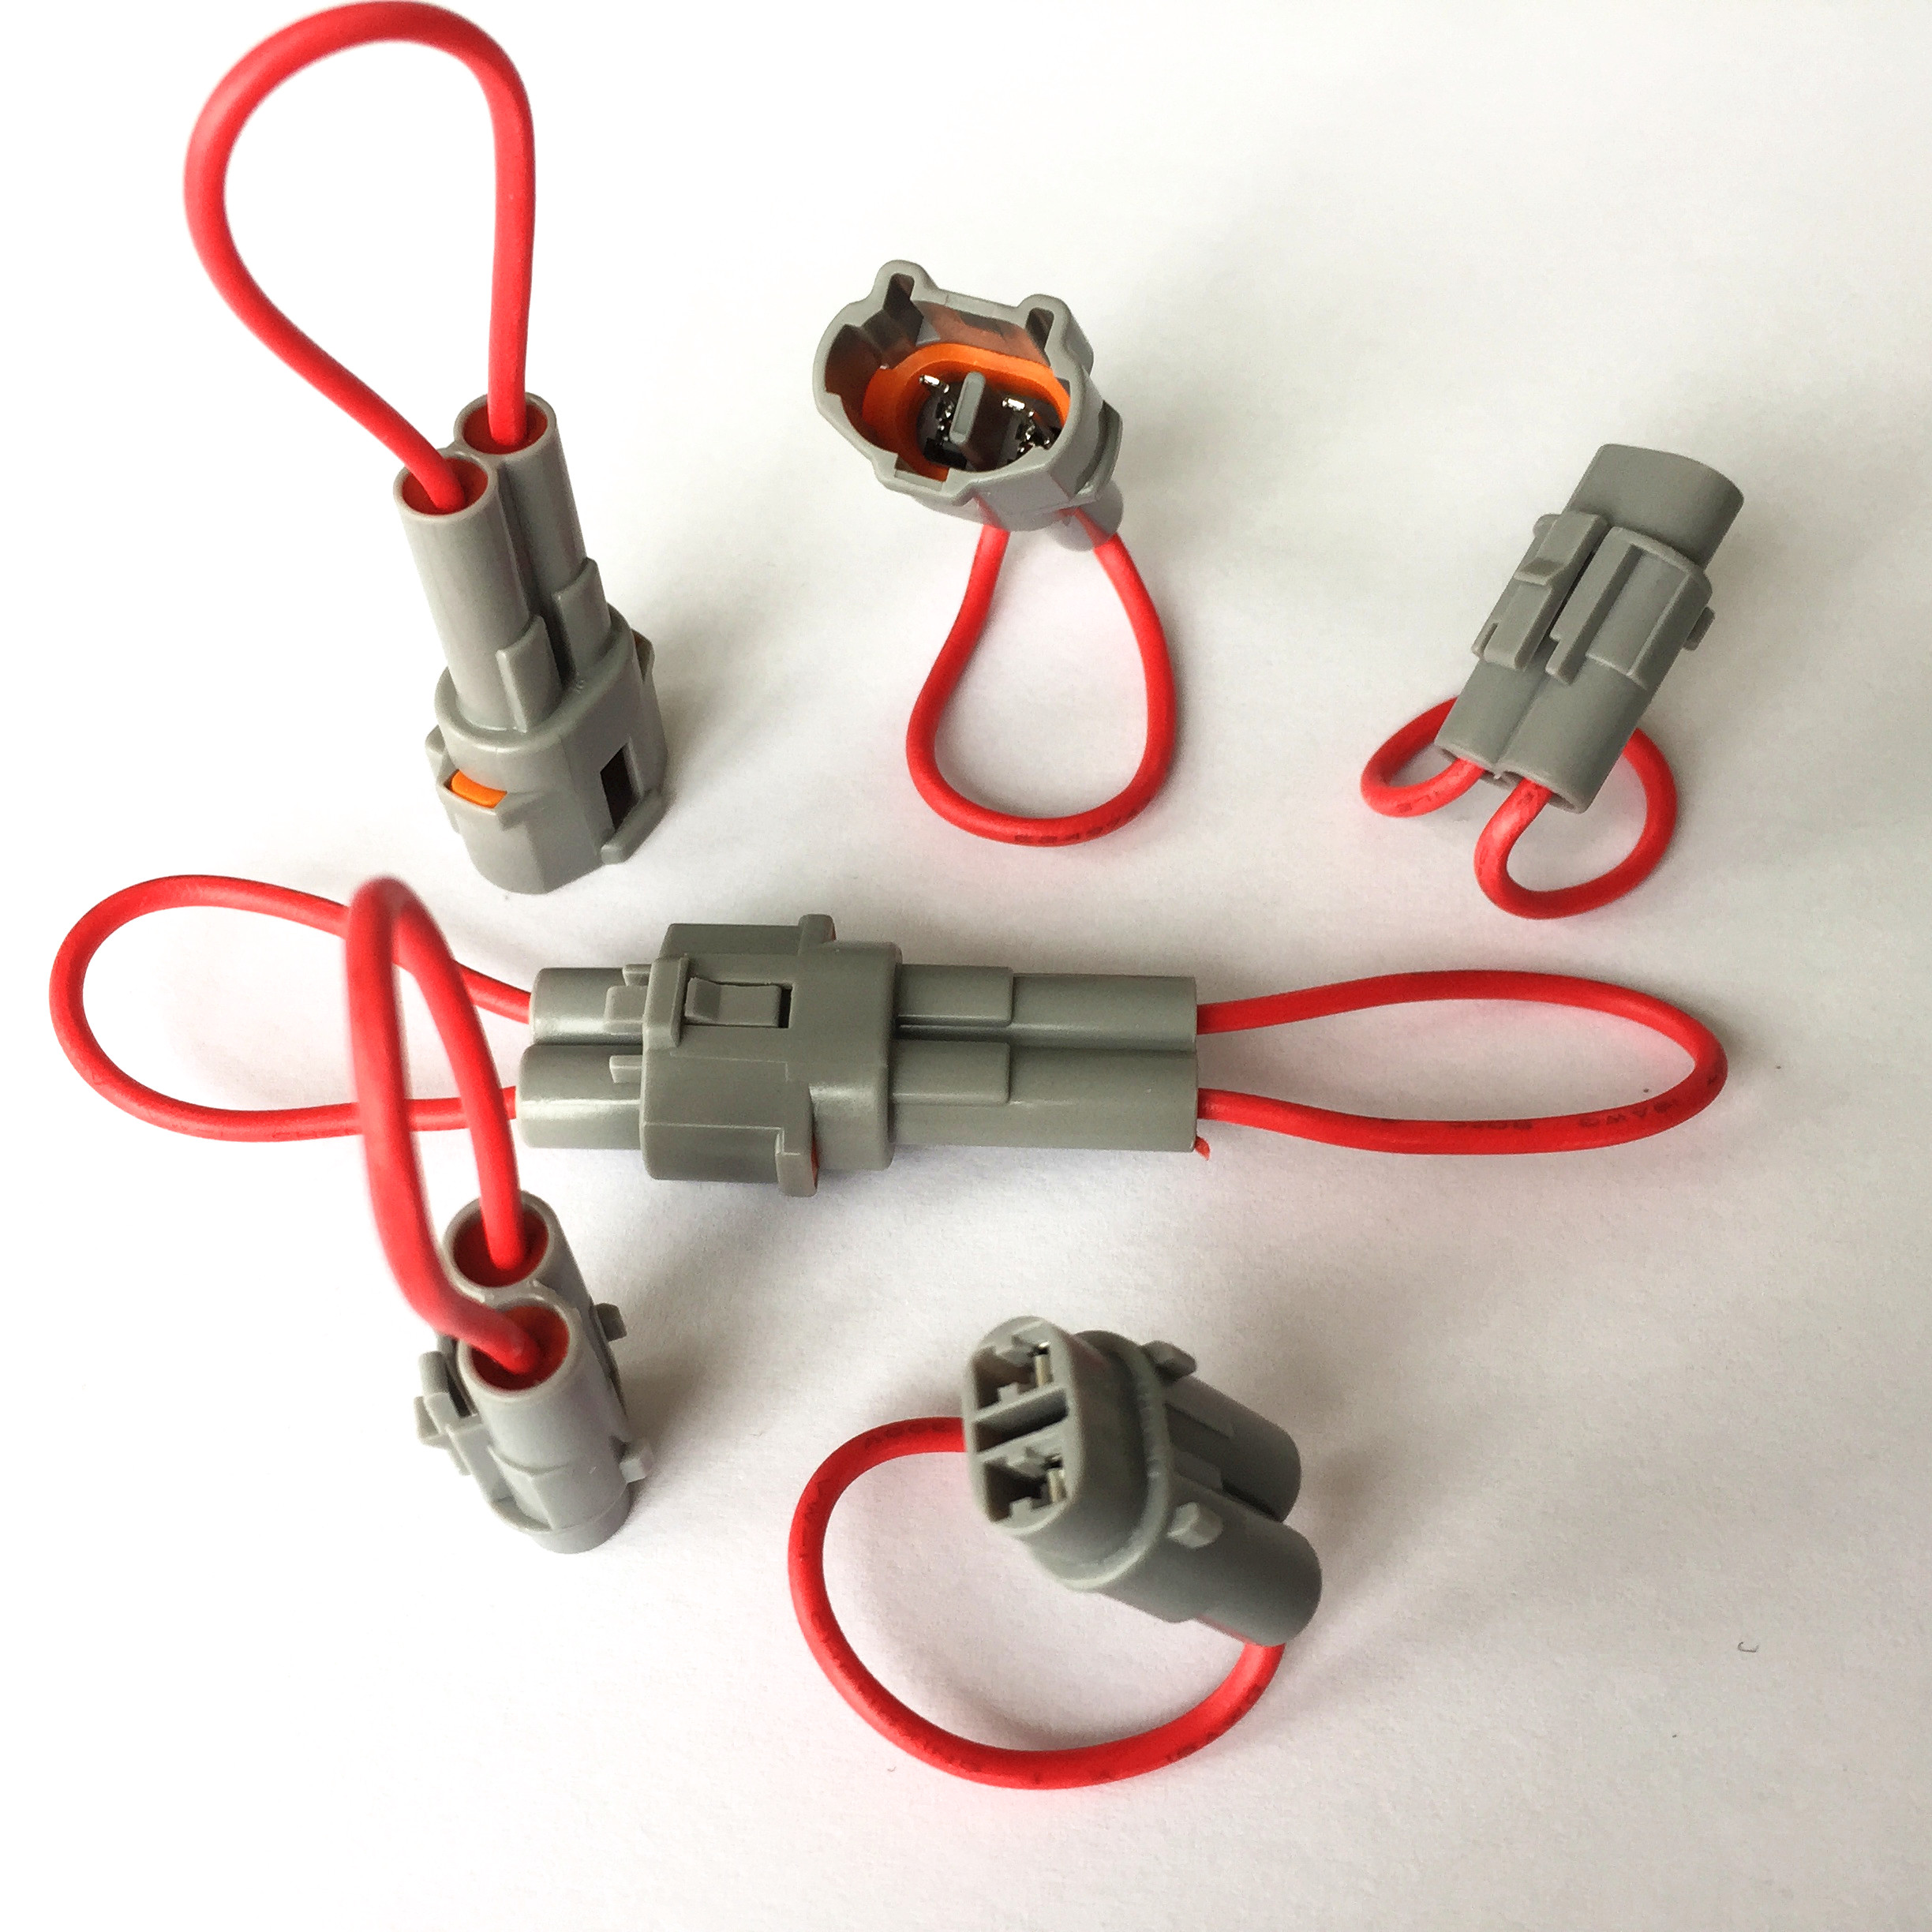 2 Pin Sumitomoo 6180-2321 6187-2311 Male Kit MT Sealed ...  Pin Automotive Connector Wiring Harness on 2 pin dc power connector, 2 pin electrical connector weatherproof, wireless connector 8 pin harness,